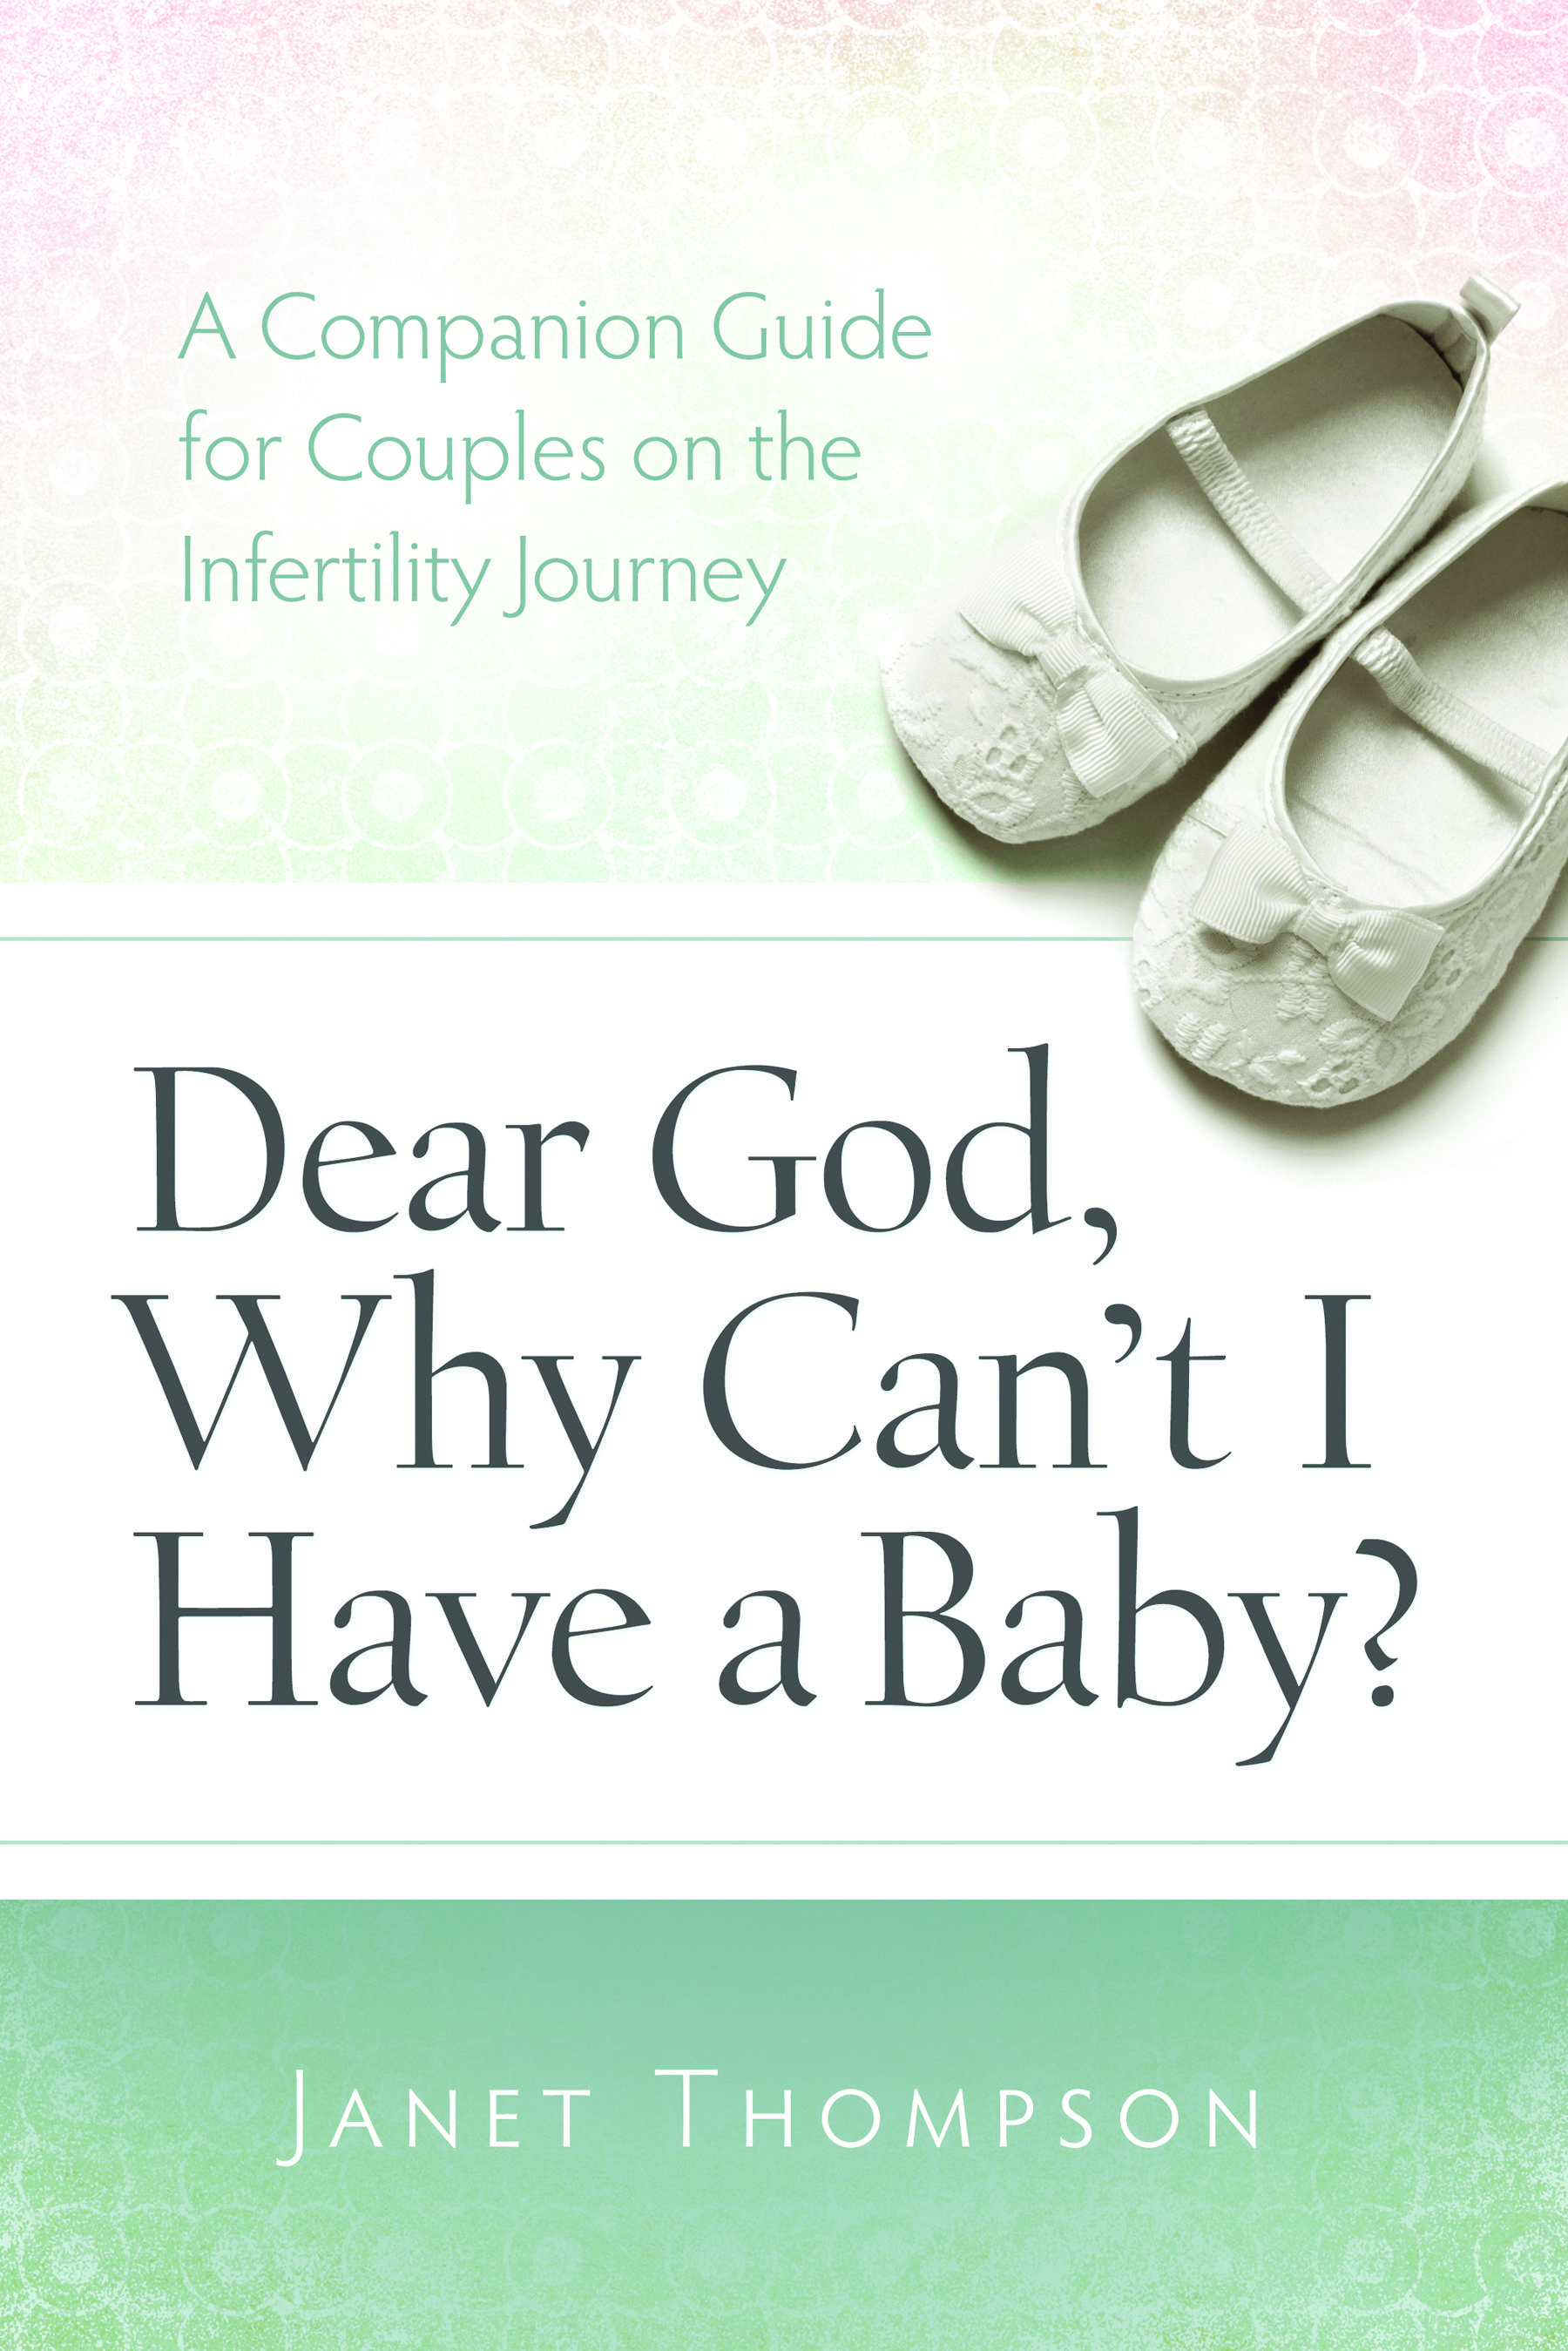 Dear God, Why Can't I Have a Baby? | Janet's infertility story |  AmateurNester.com